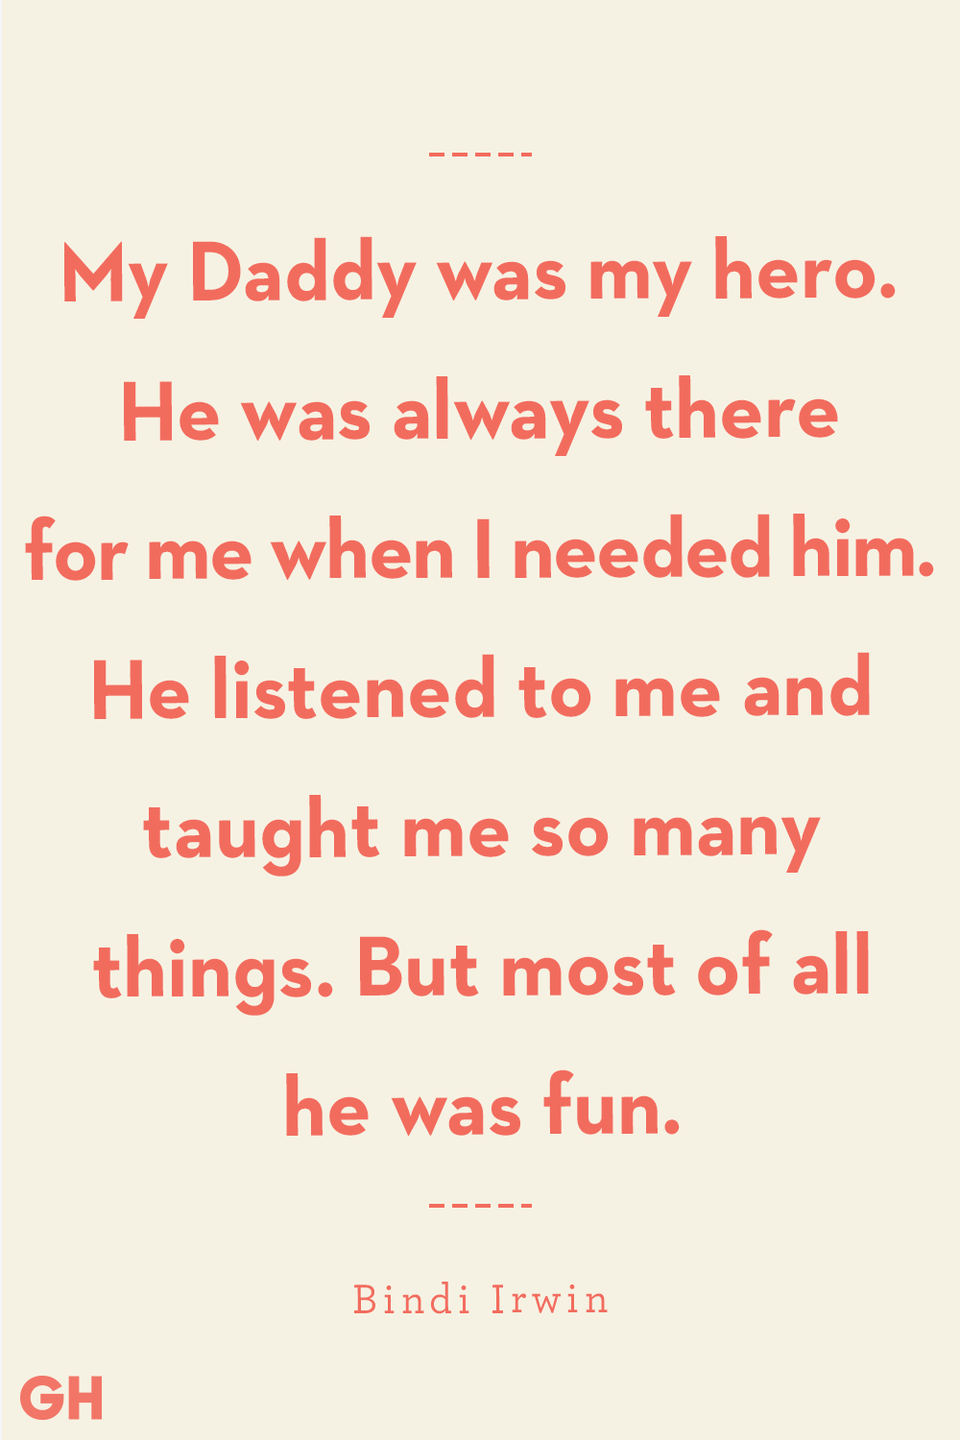 <p>My Daddy was my hero. He was always there for me when I needed him. He listened to me and taught me so many things. But most of all he was fun.</p>